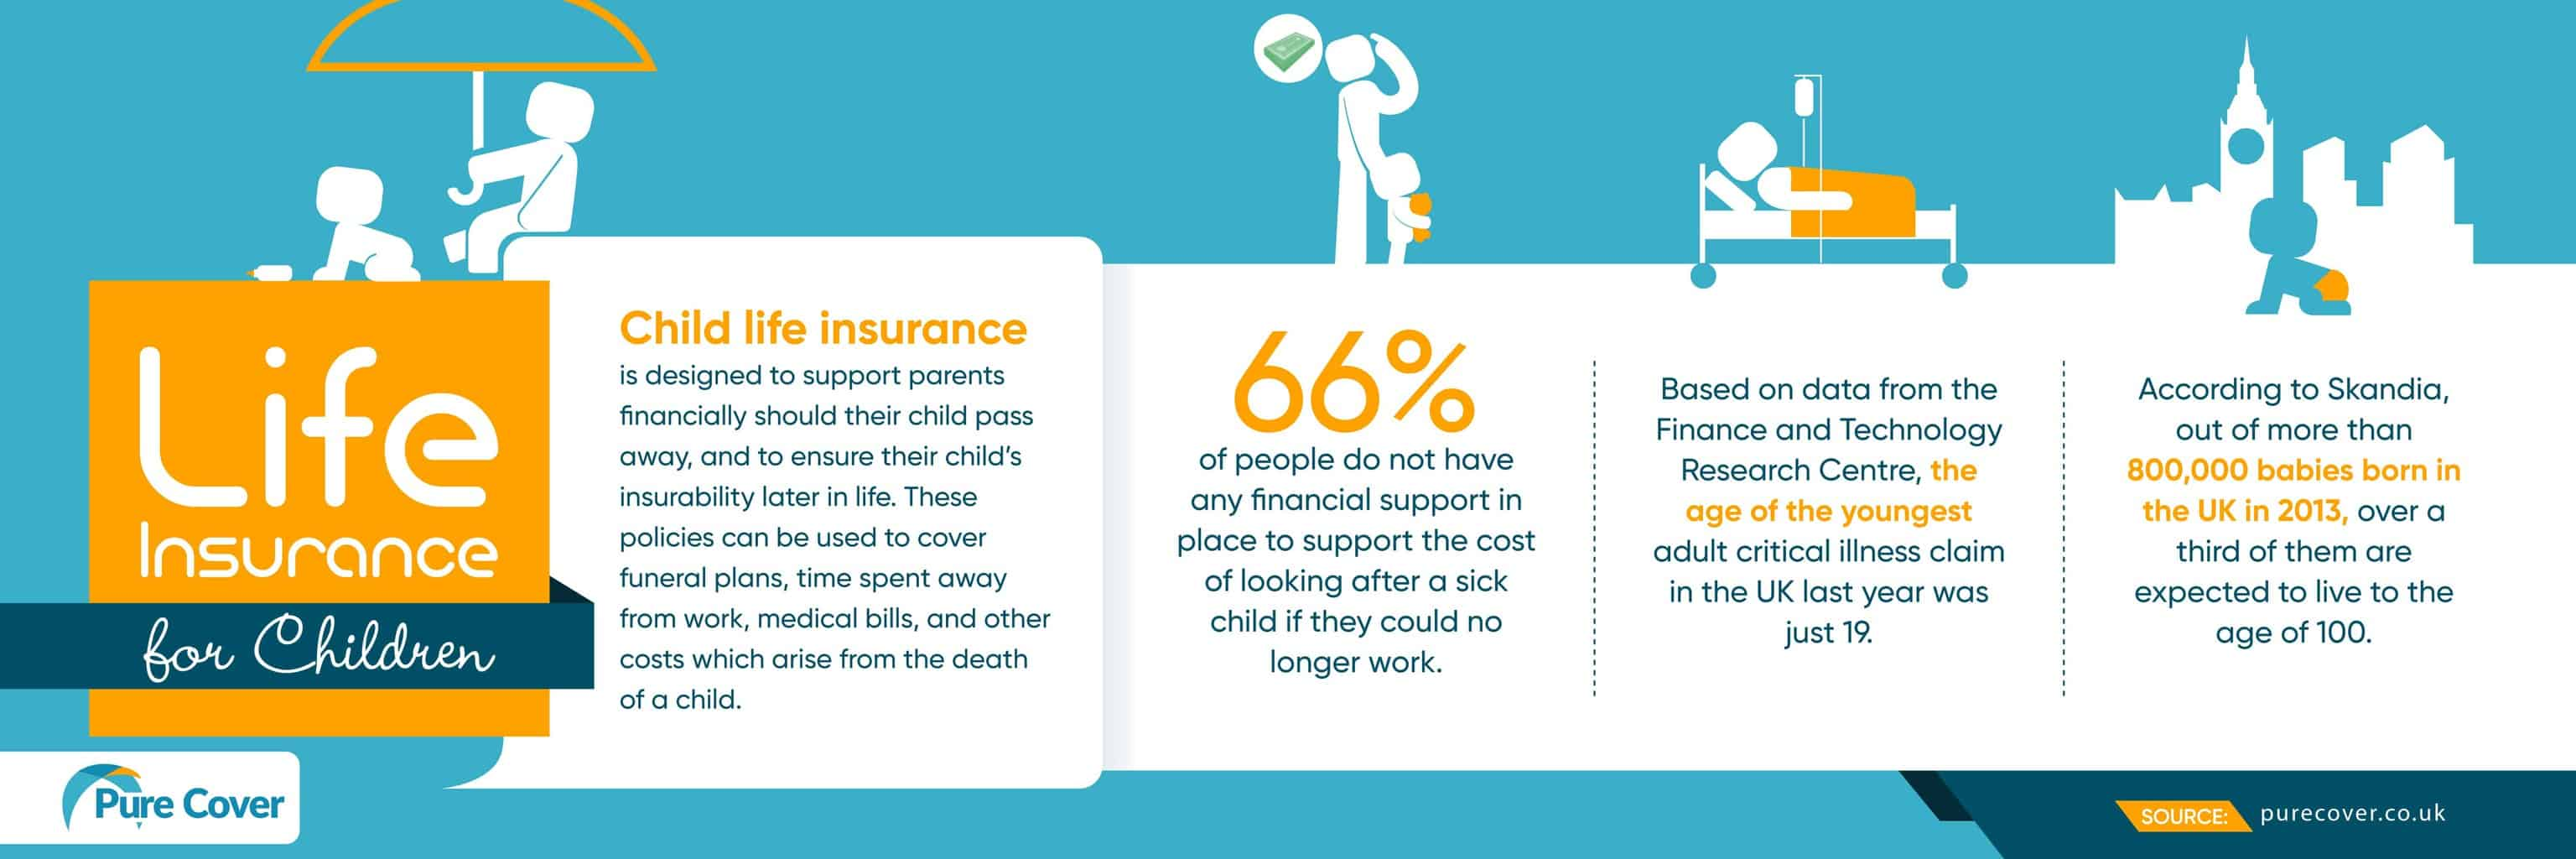 Pure-Cover--Life-Insurance-For-Children